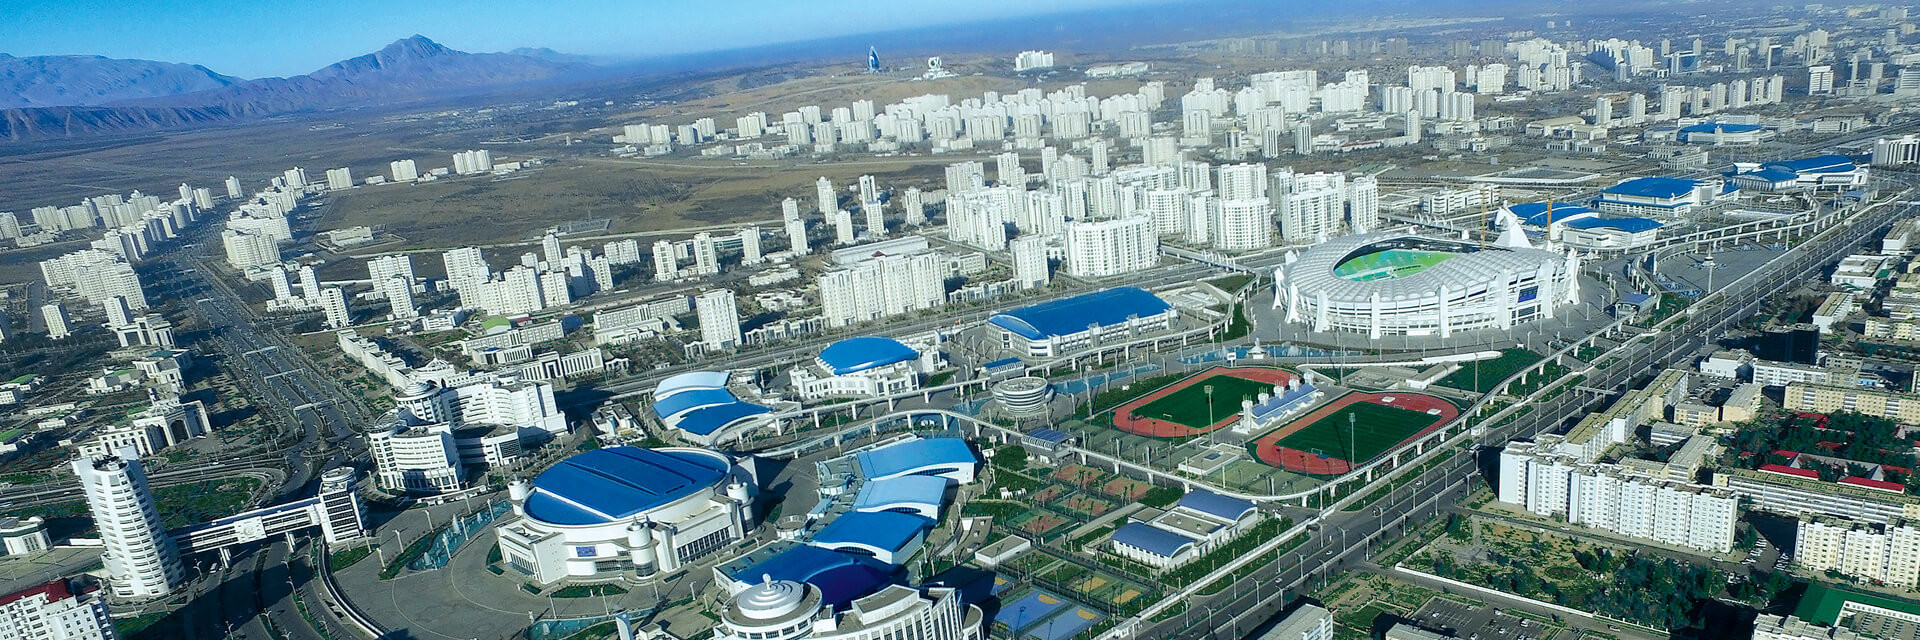 The Ashgabat Olympic Complex will stage the 2017 Asian Indoor and Martial Arts Games ©Ashgabat 2017